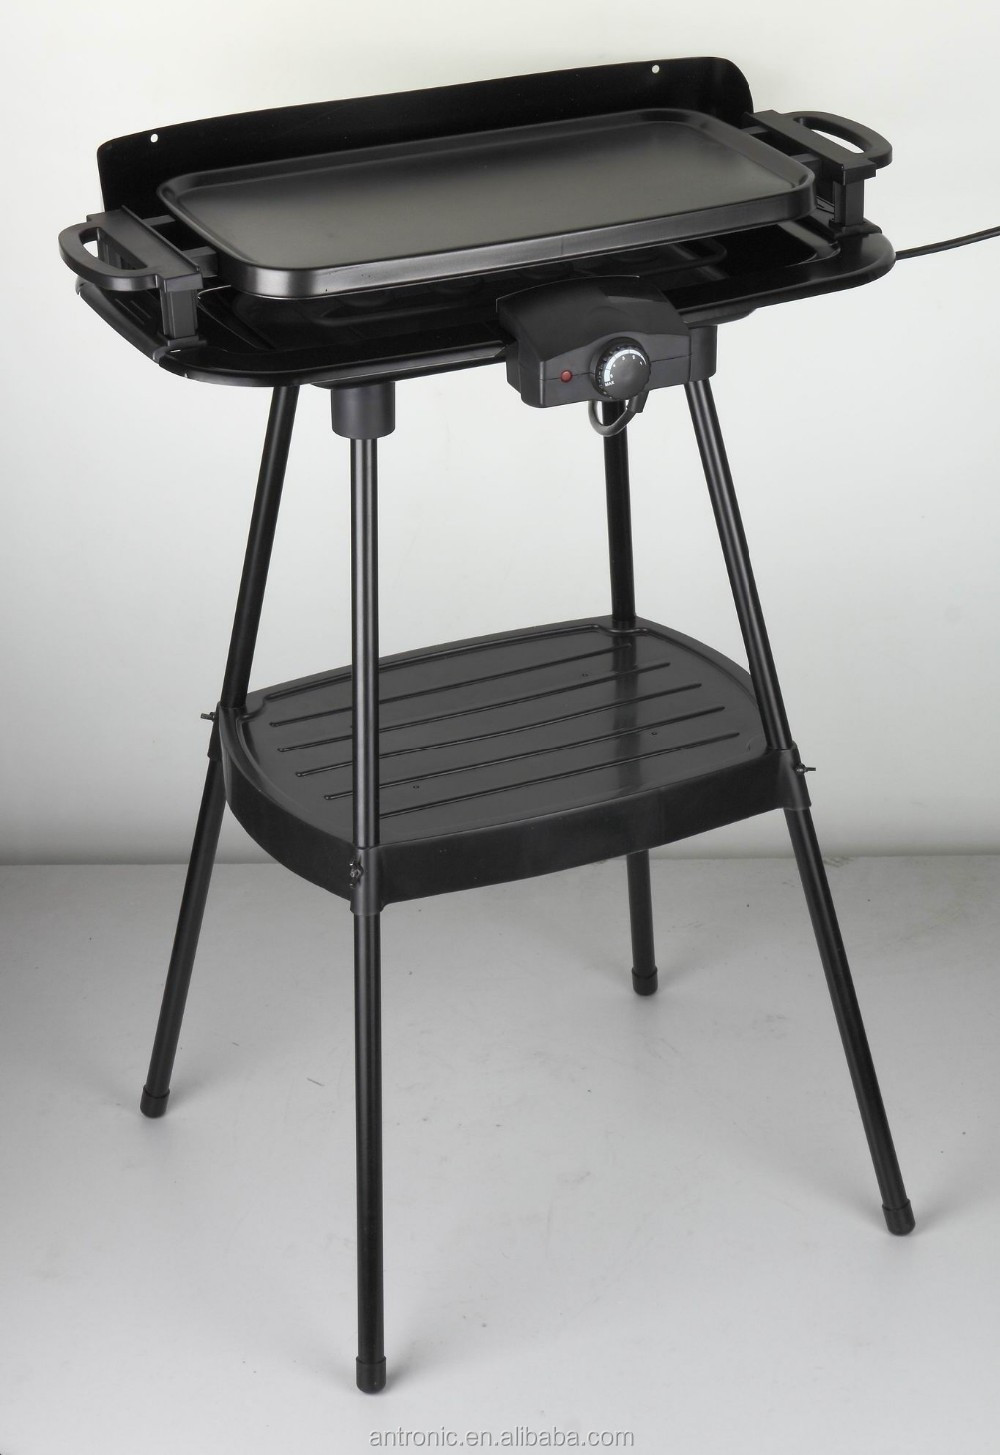 Electric Grills Product ~ Atc bq t antronic electric grill lava rock